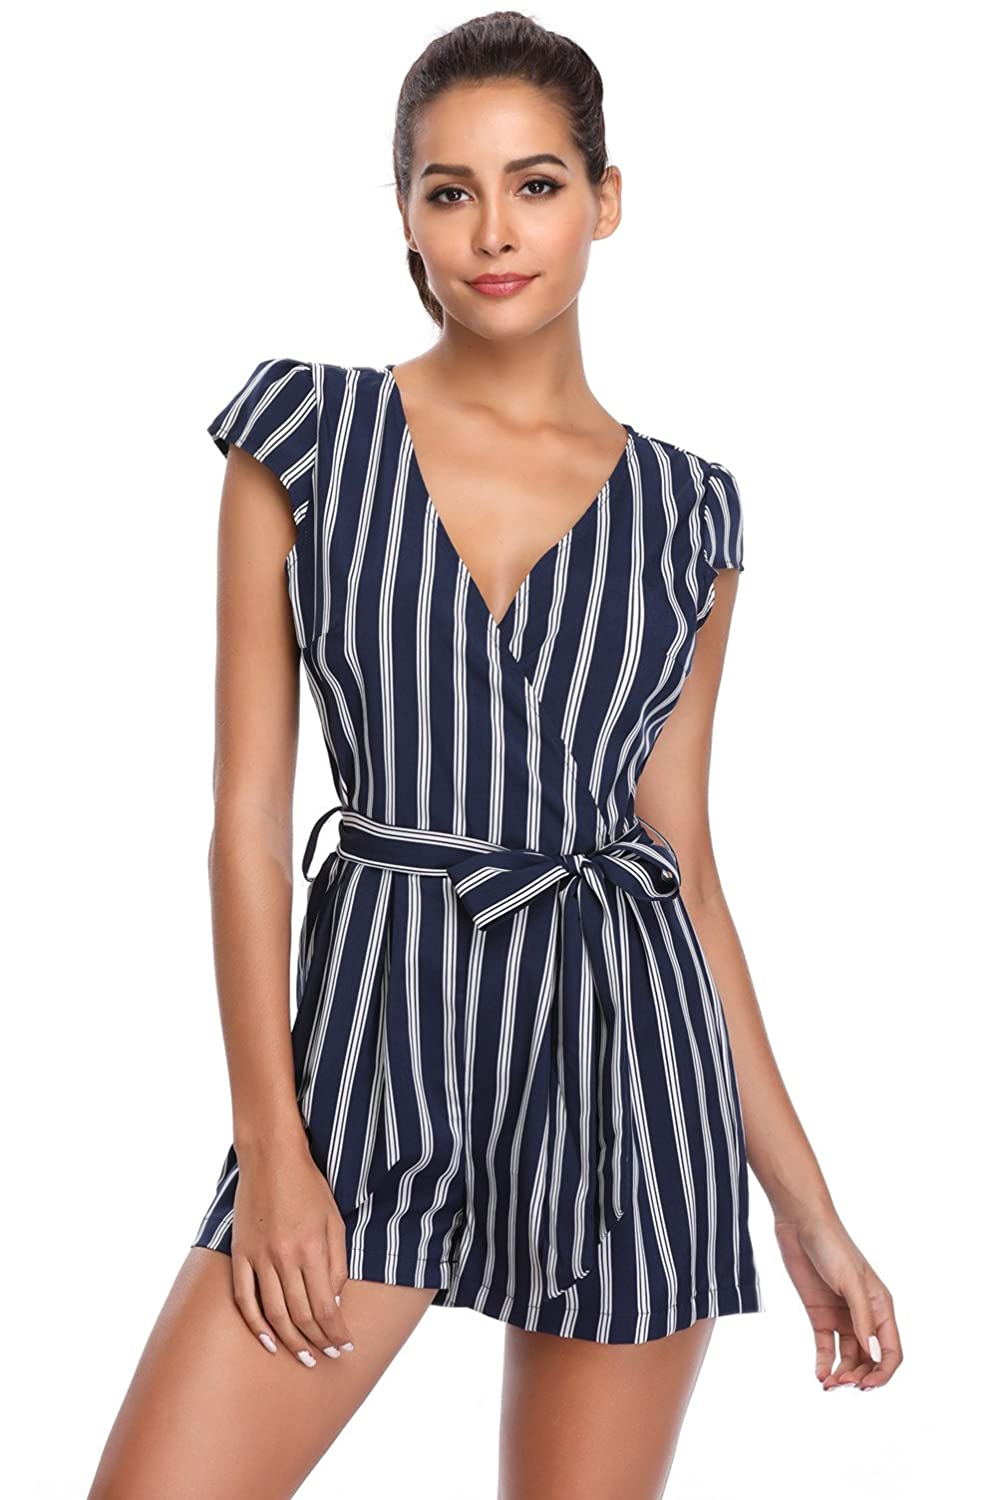 31f62726 MISS MOLY Women's Sexy Club Romper Deep V Neck Cap Short Sleeves Crossover  Mid Rise Casual Vertical Jumpsuit with Belt